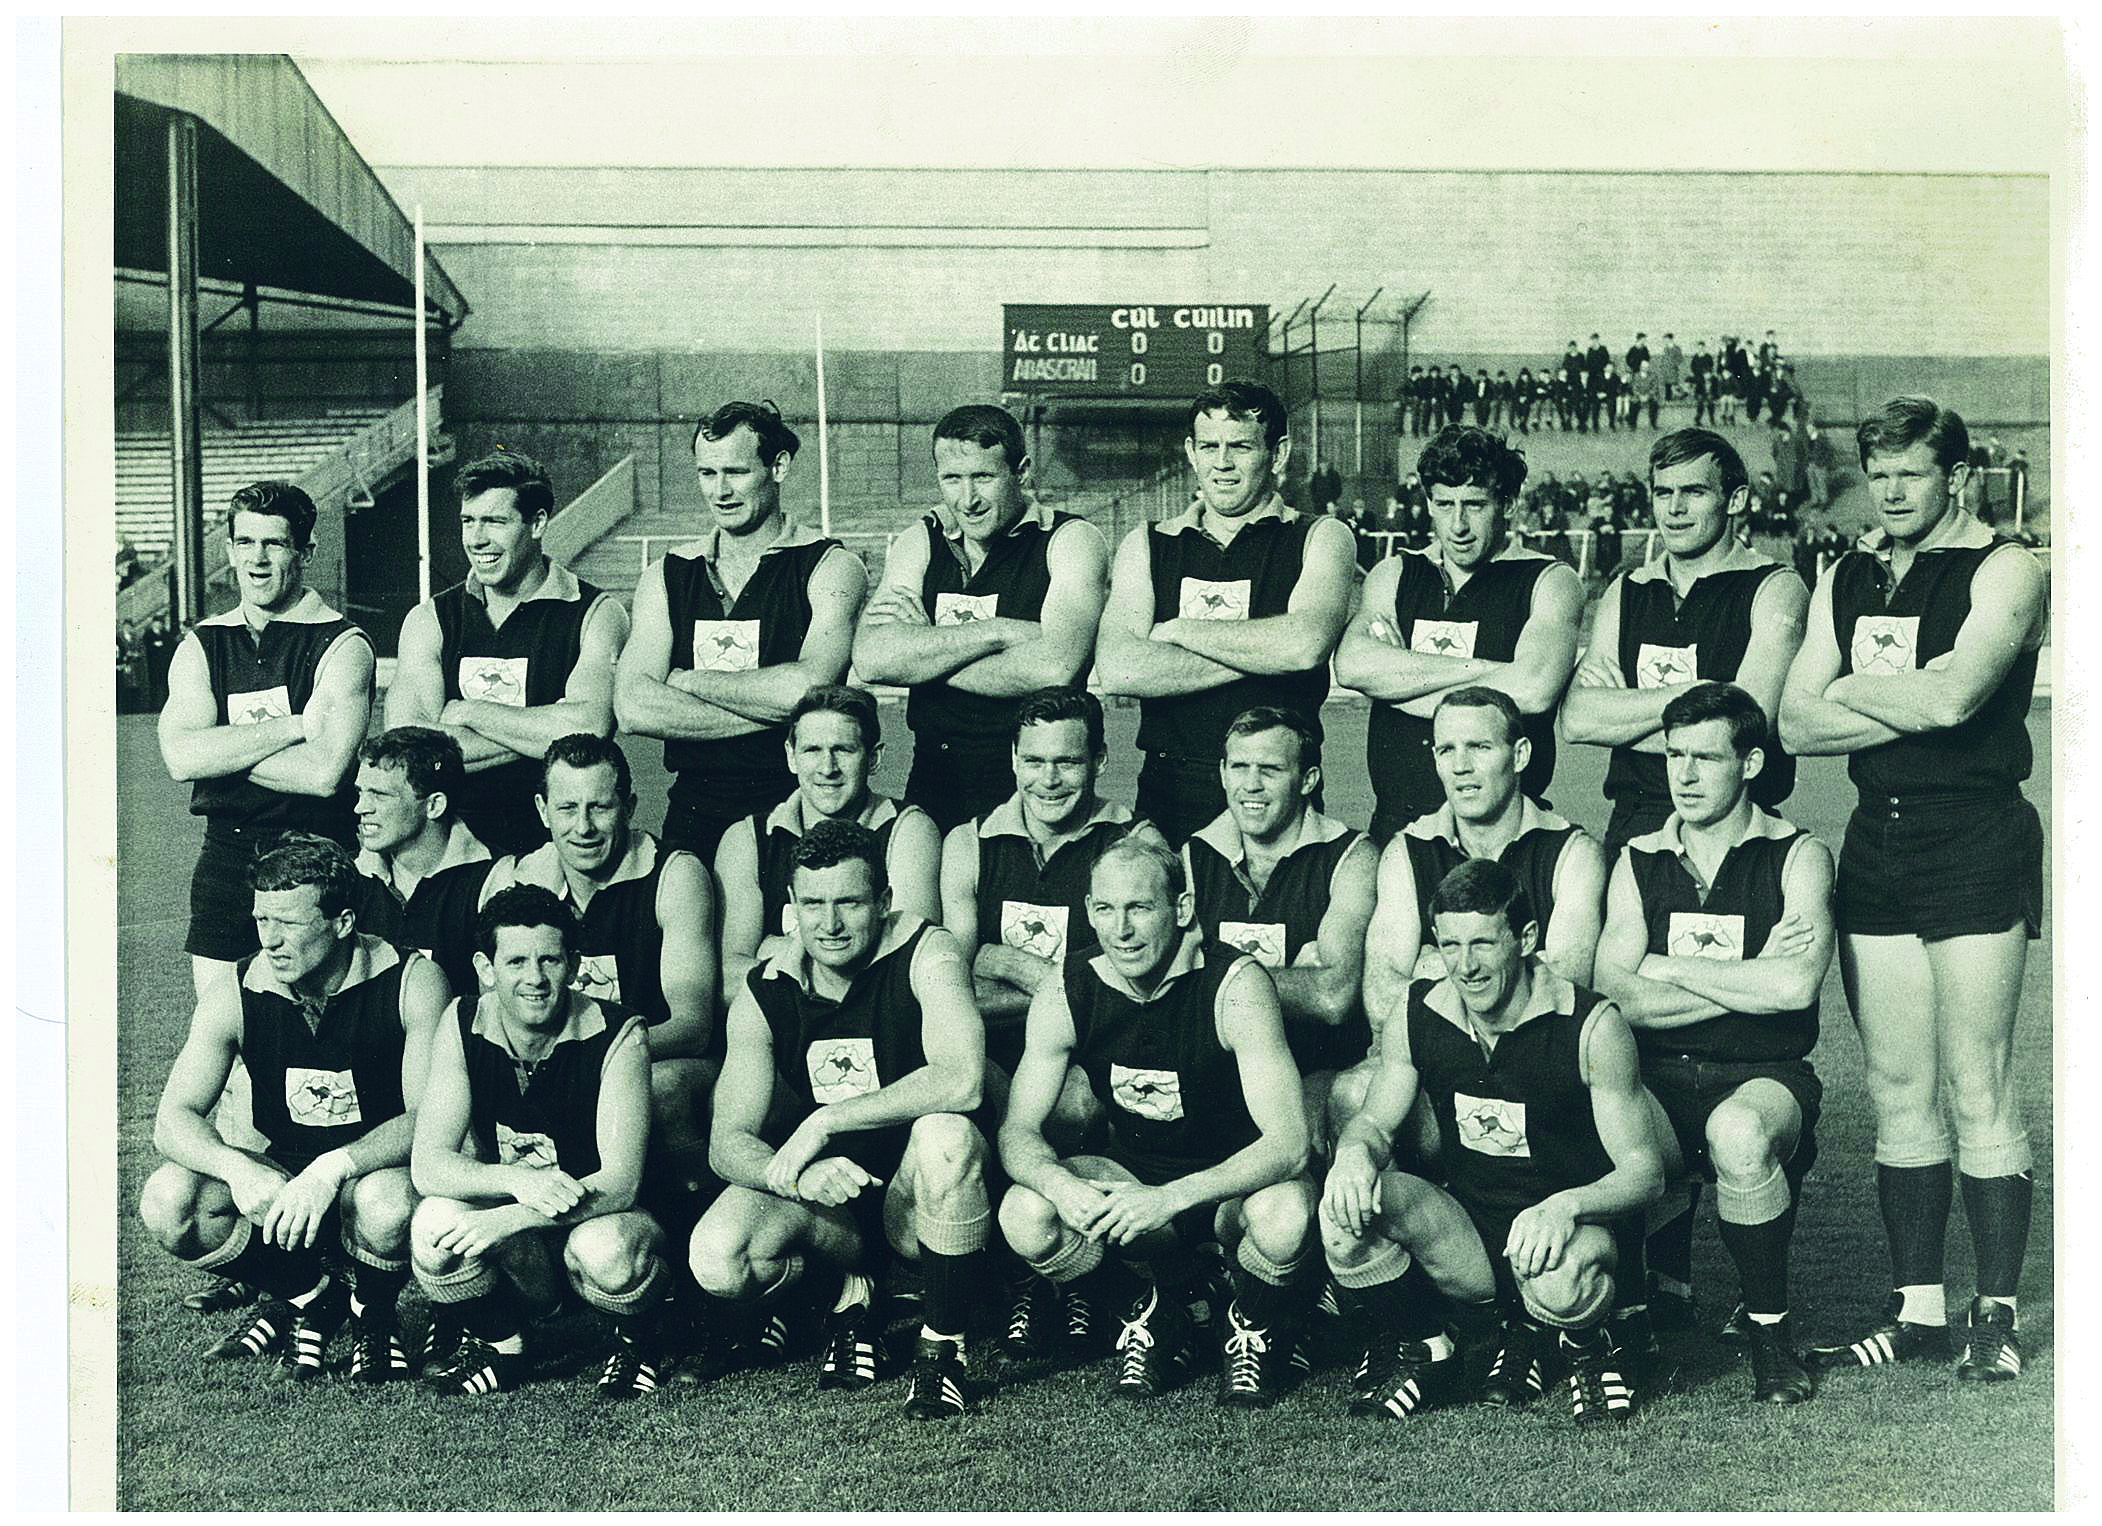 The Galahs team photo at Croke Park, 29 October 1967 (Irish Times  © - all rights reserved)